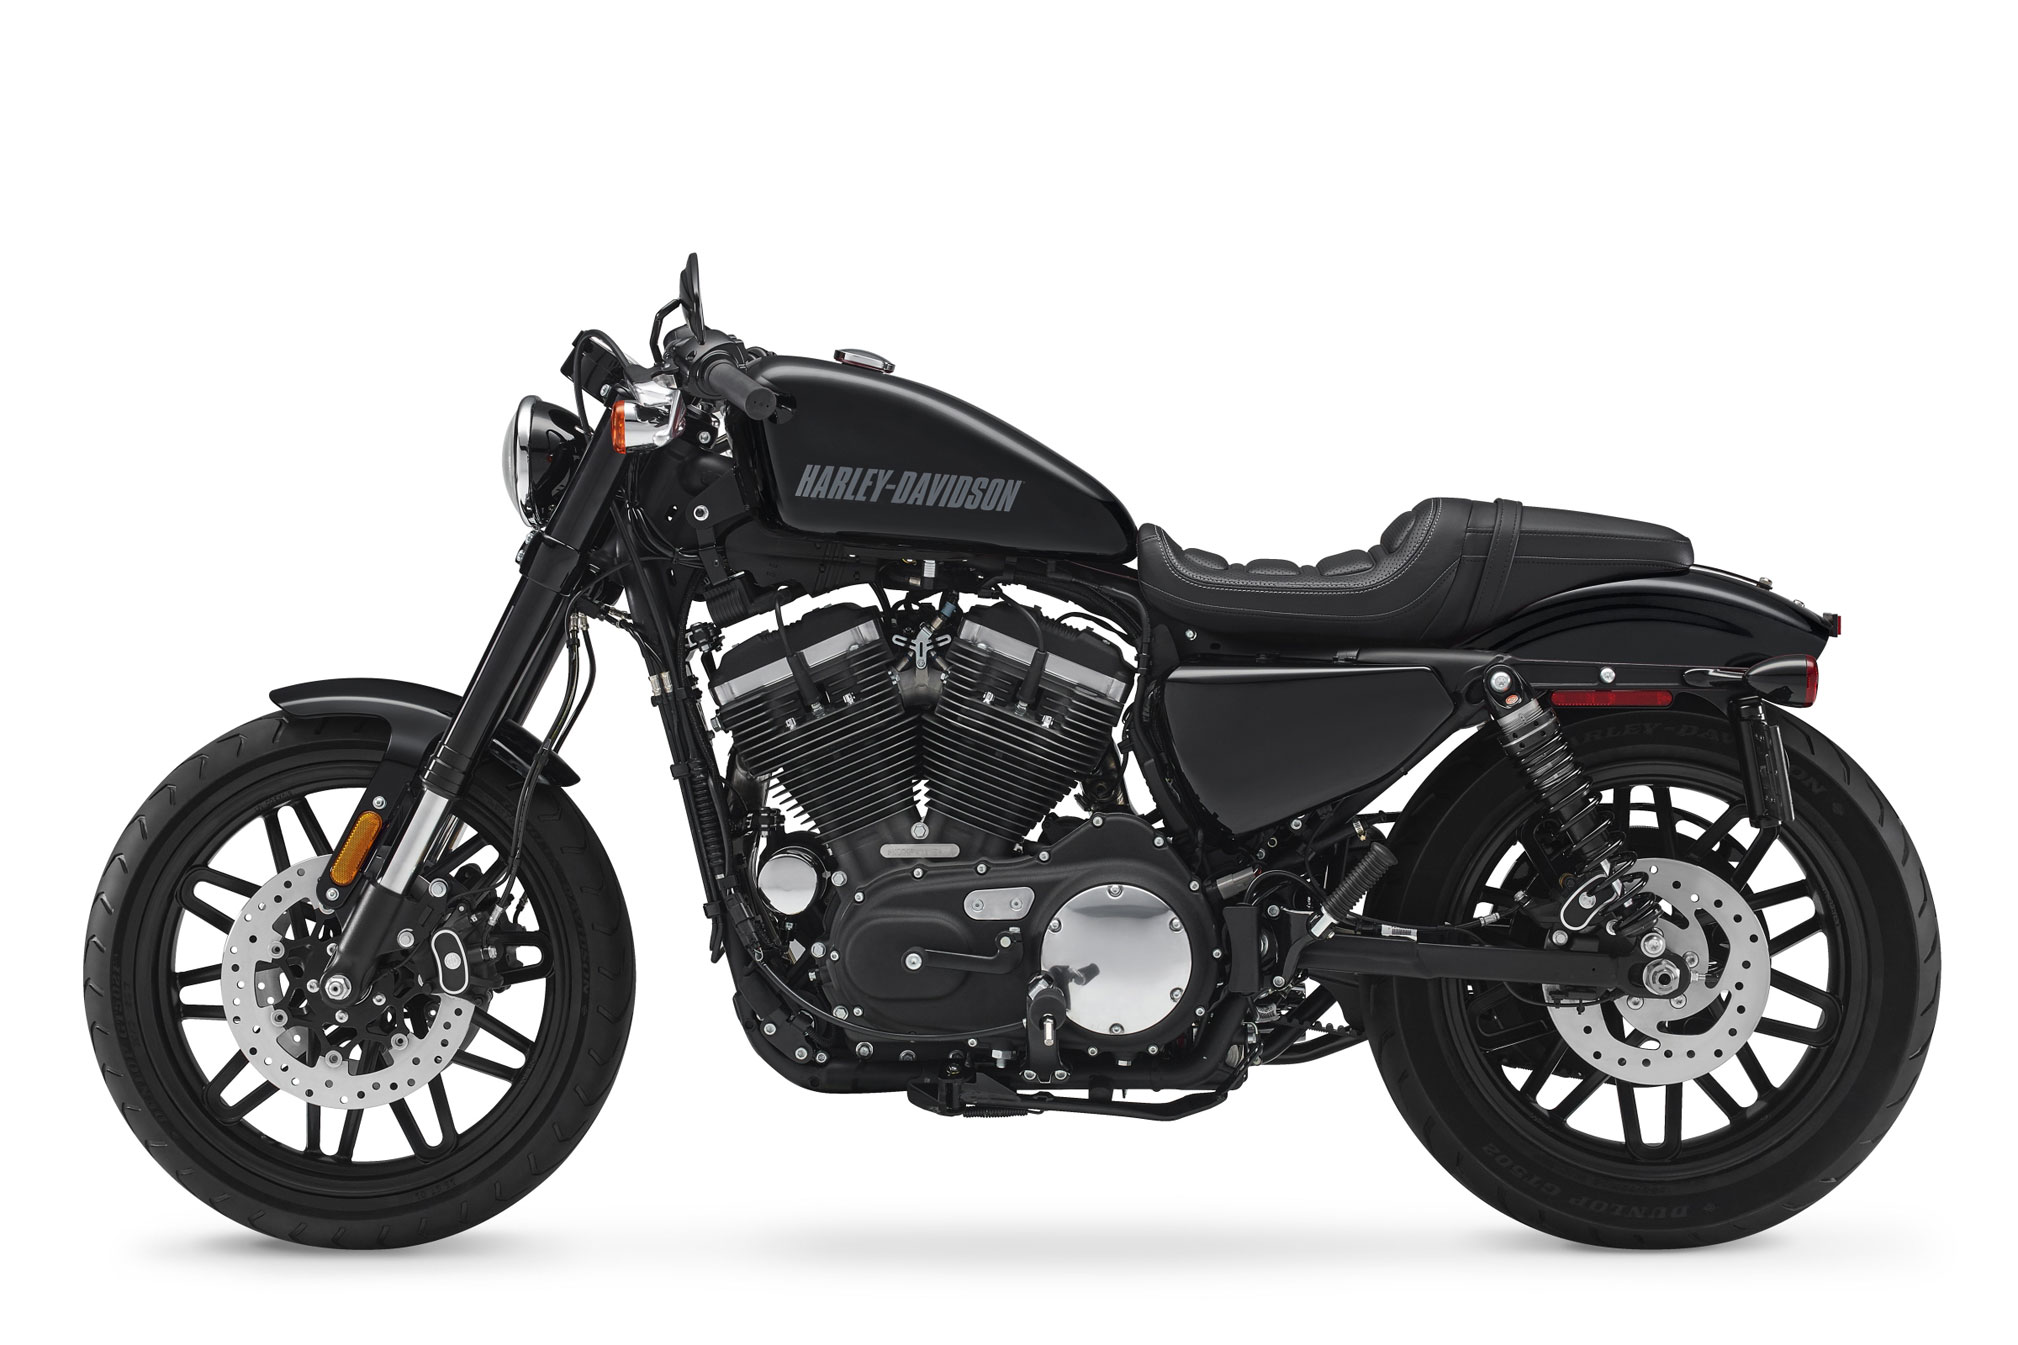 2018 Harley Davidson Roadster Review Total Motorcycle